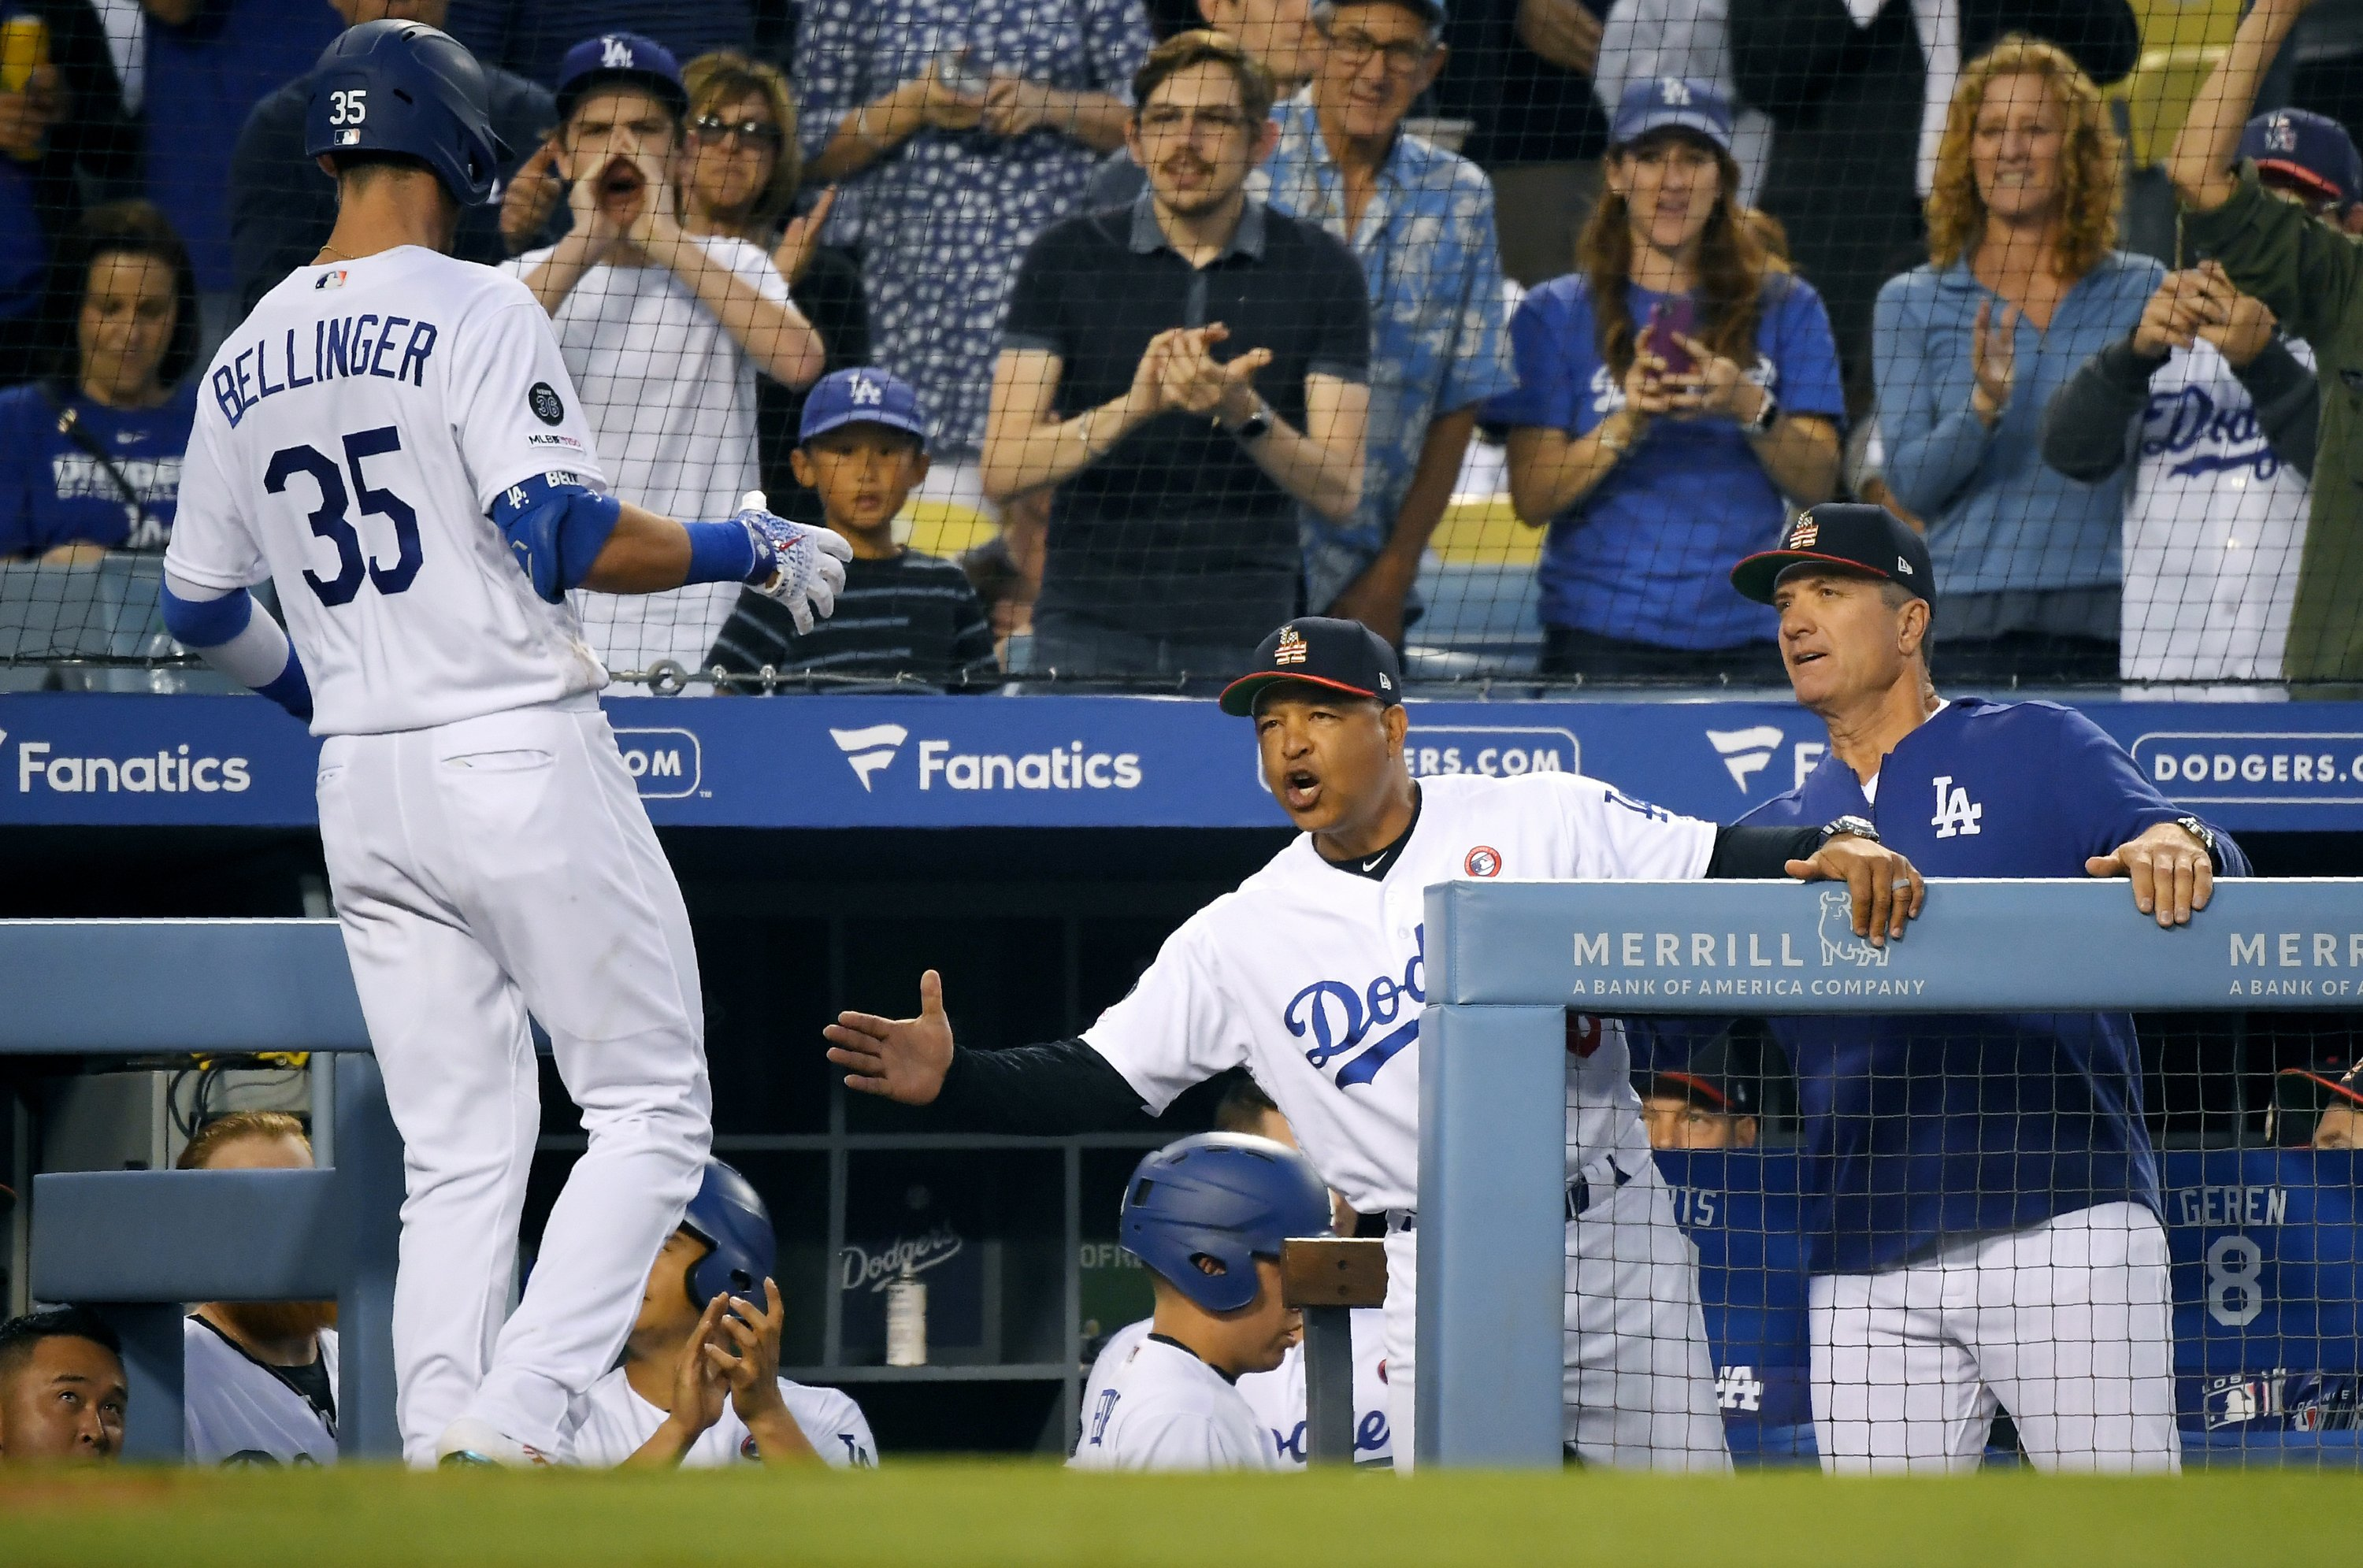 Ryu dominates, Bellinger homers and Dodgers beat Padres 5-1